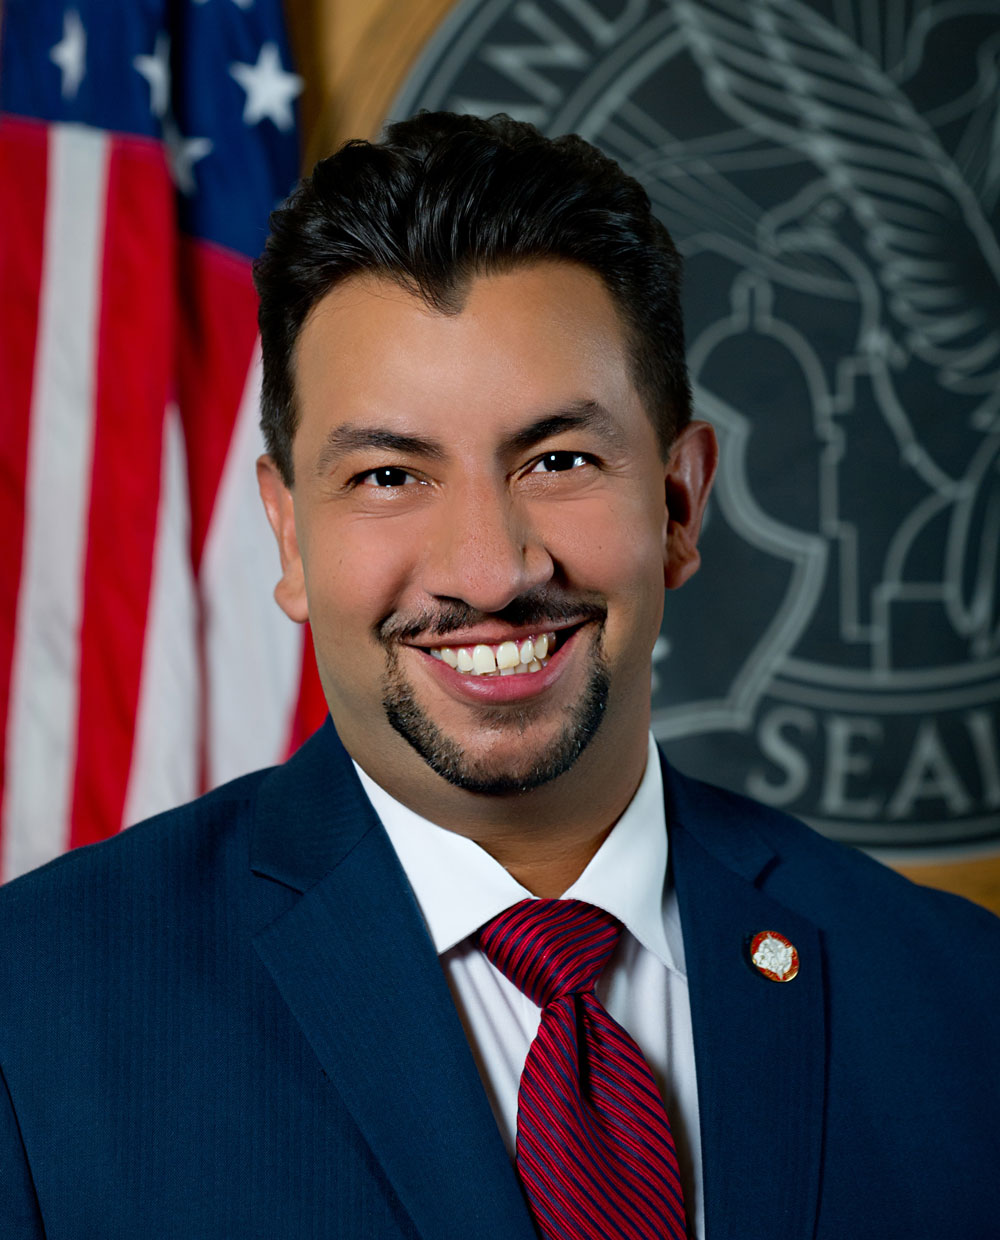 Councilman Paul D. López of the City and County of Denver's District 3.